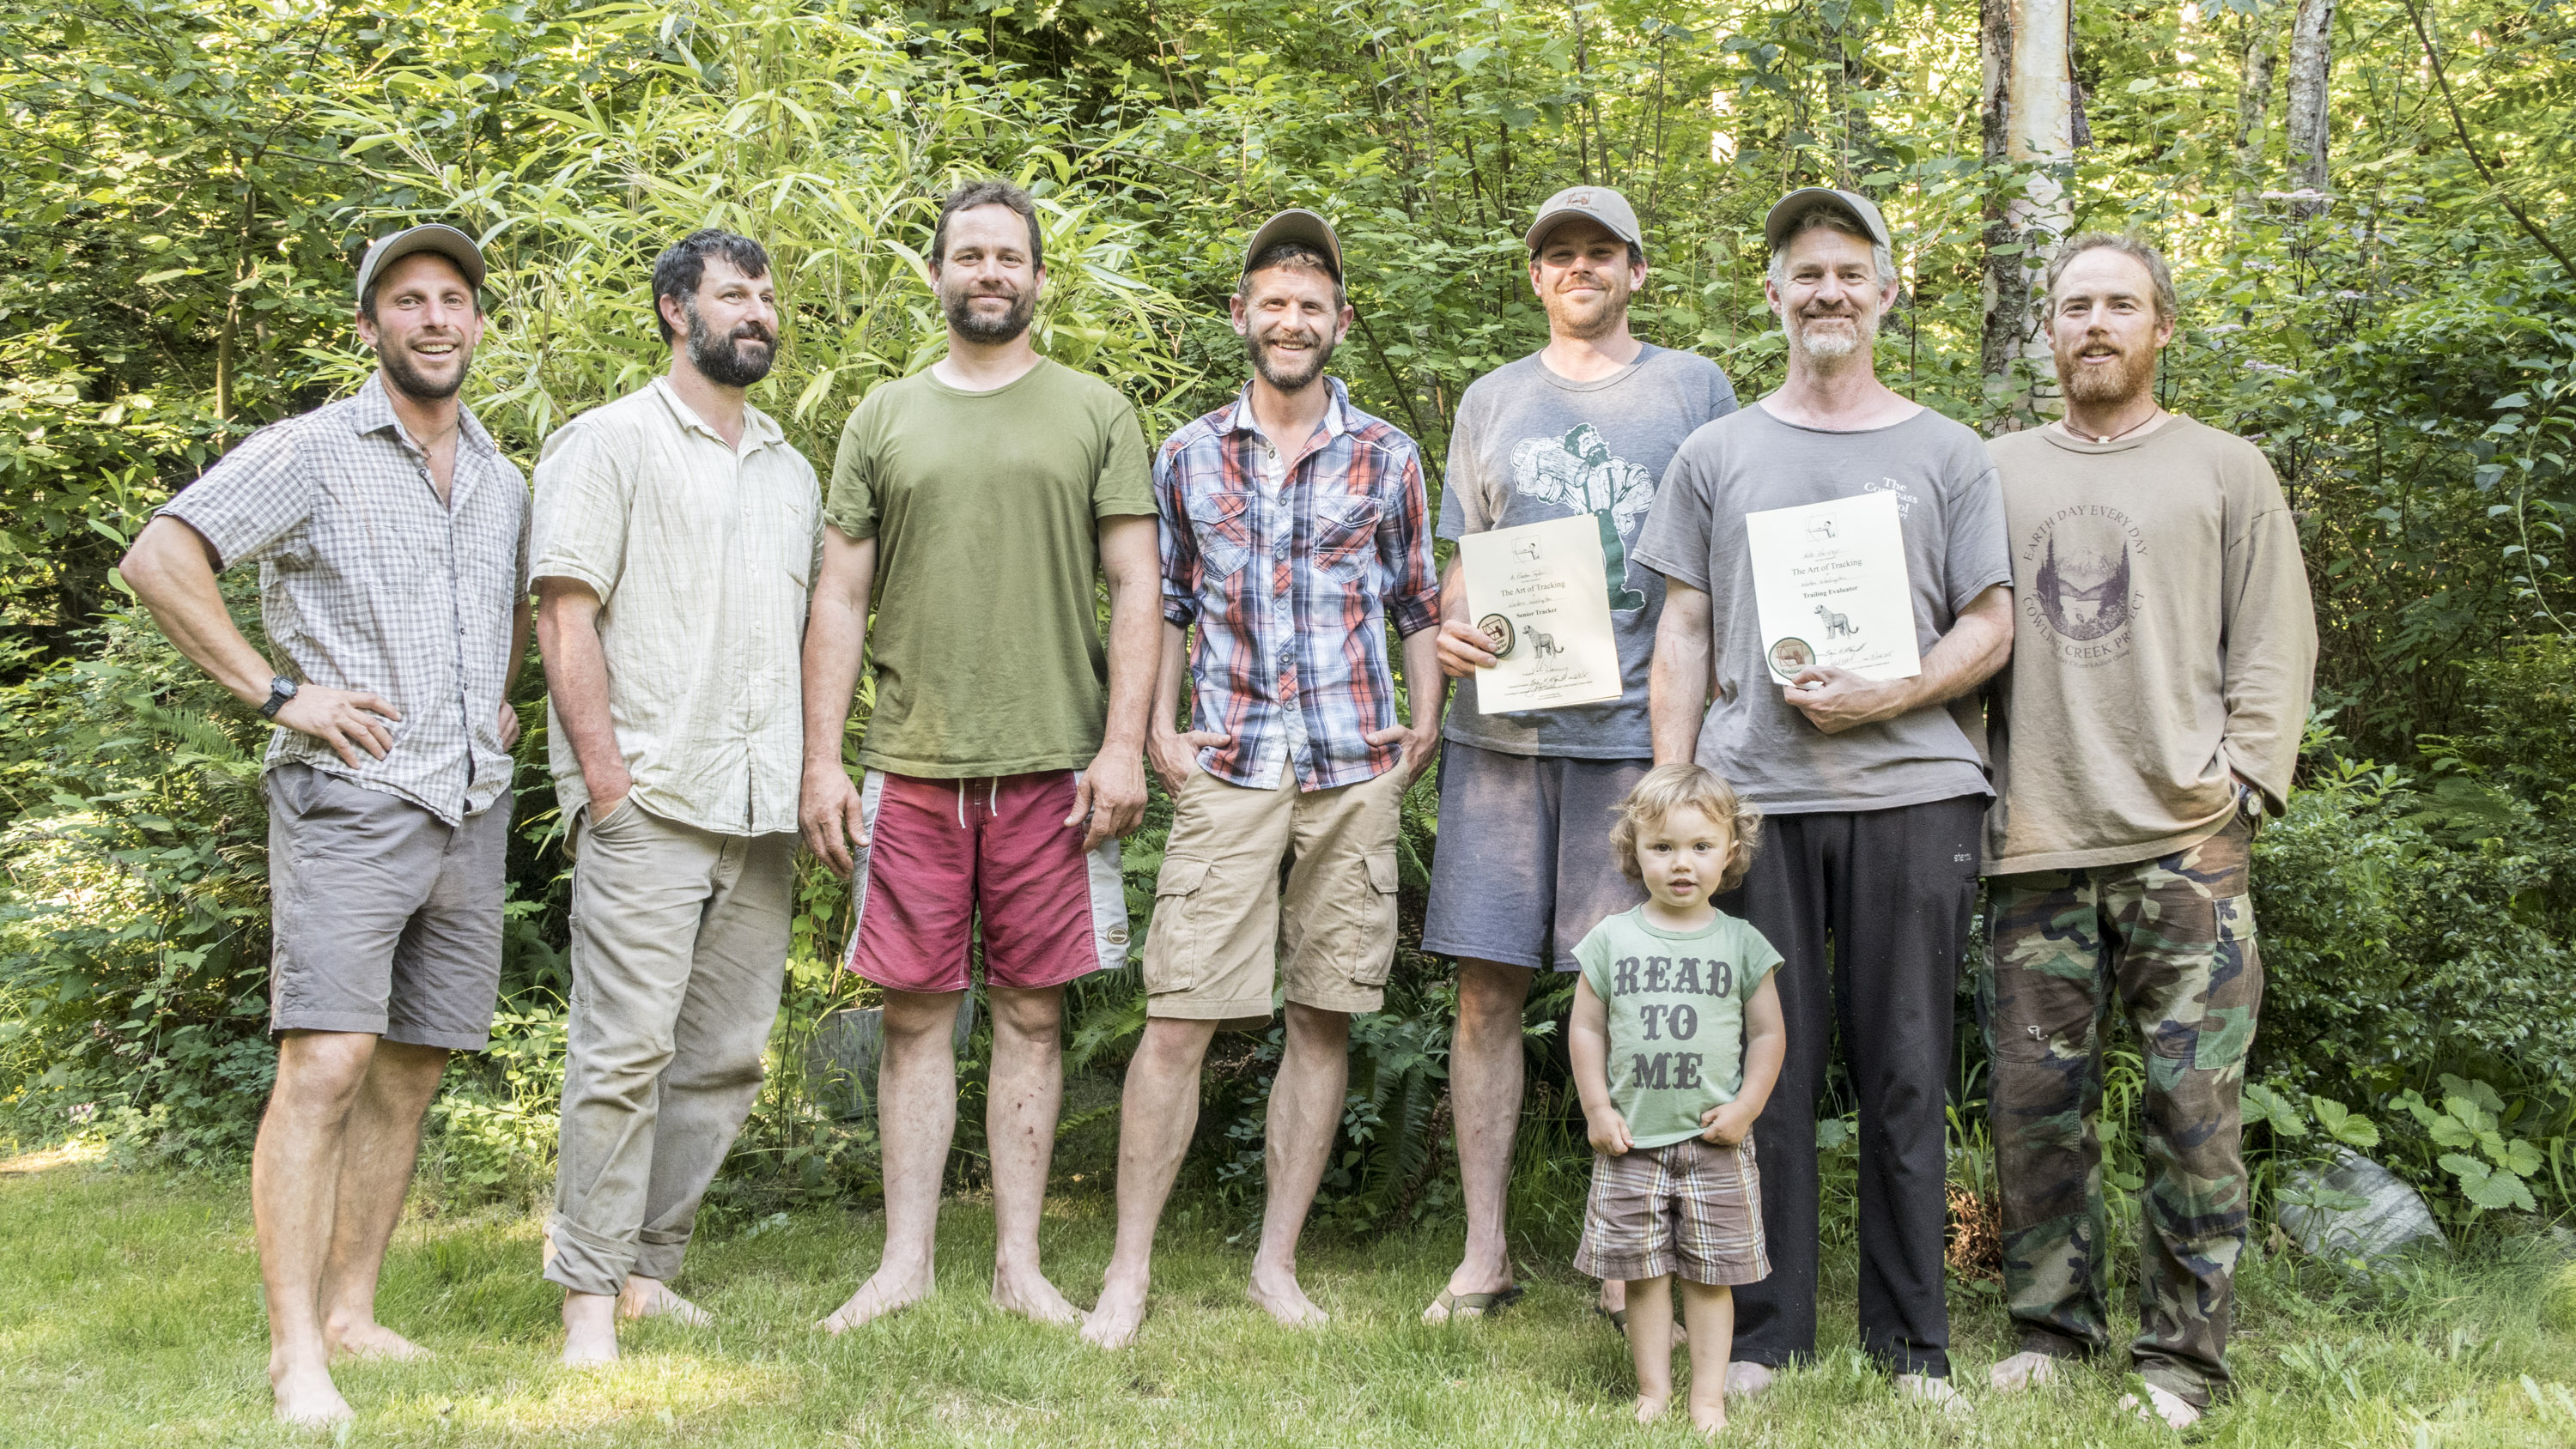 Pictured left to right Dave Moskowitz, Mark Elbroch, Matt Nelson, Casey McFarland, Preston Taylor, Willow McConnell(future bear trailer), Nate Harvey and Brian McConnell